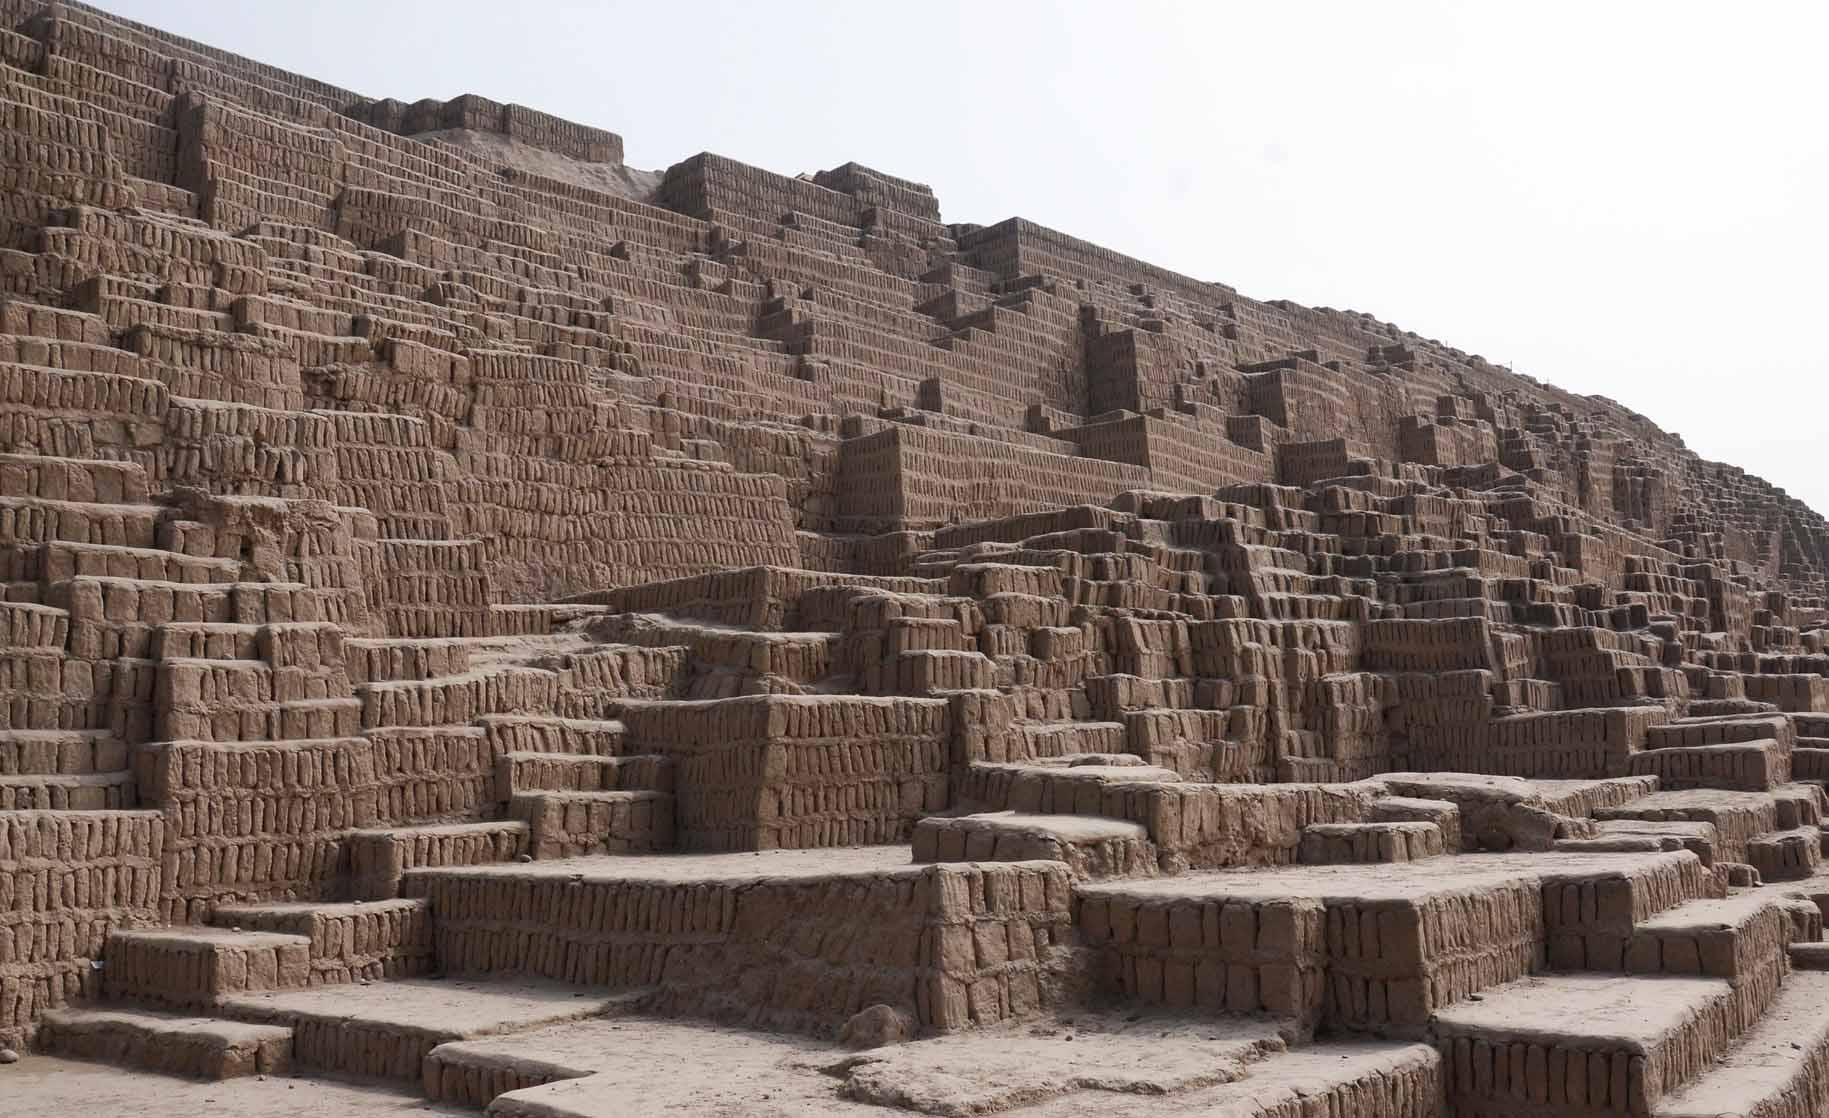 The clay adobe pyramids of Huaca Pucllana, an archaeological complex of the ancient Lima Culture.